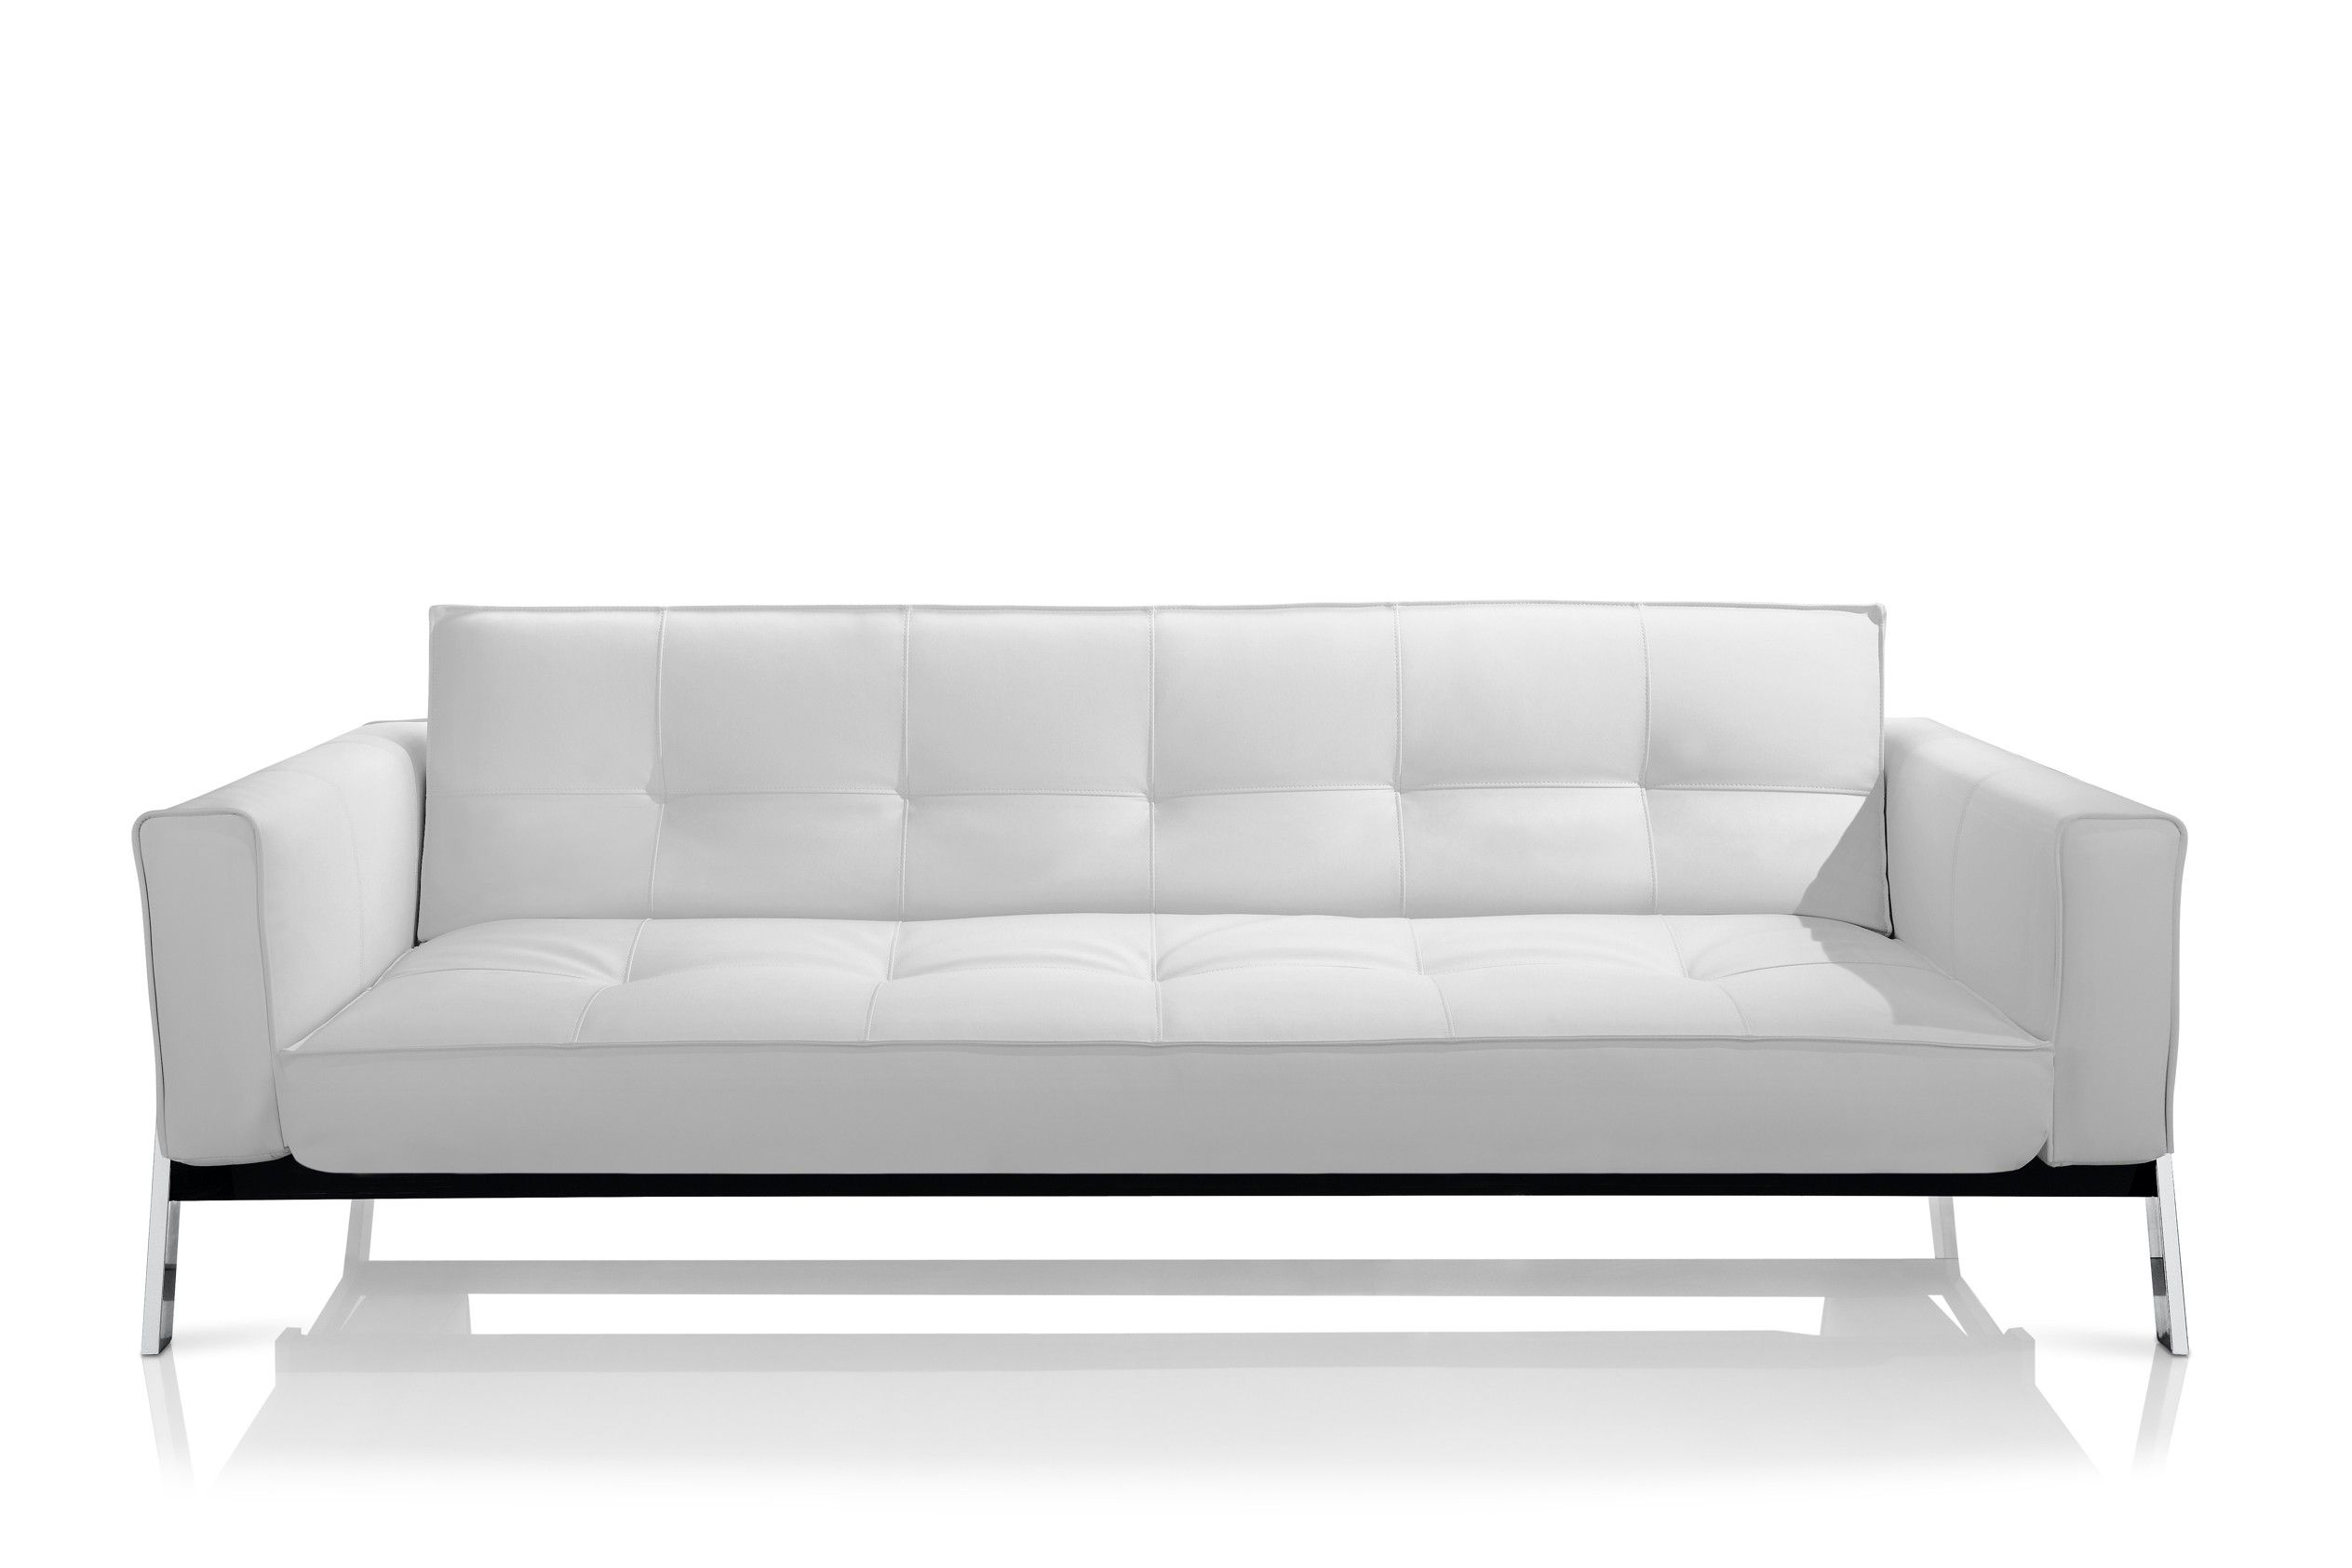 Awesome White Fabric Sofa New White Fabric Sofa 30 Sofas And Couches Set With White Fabric